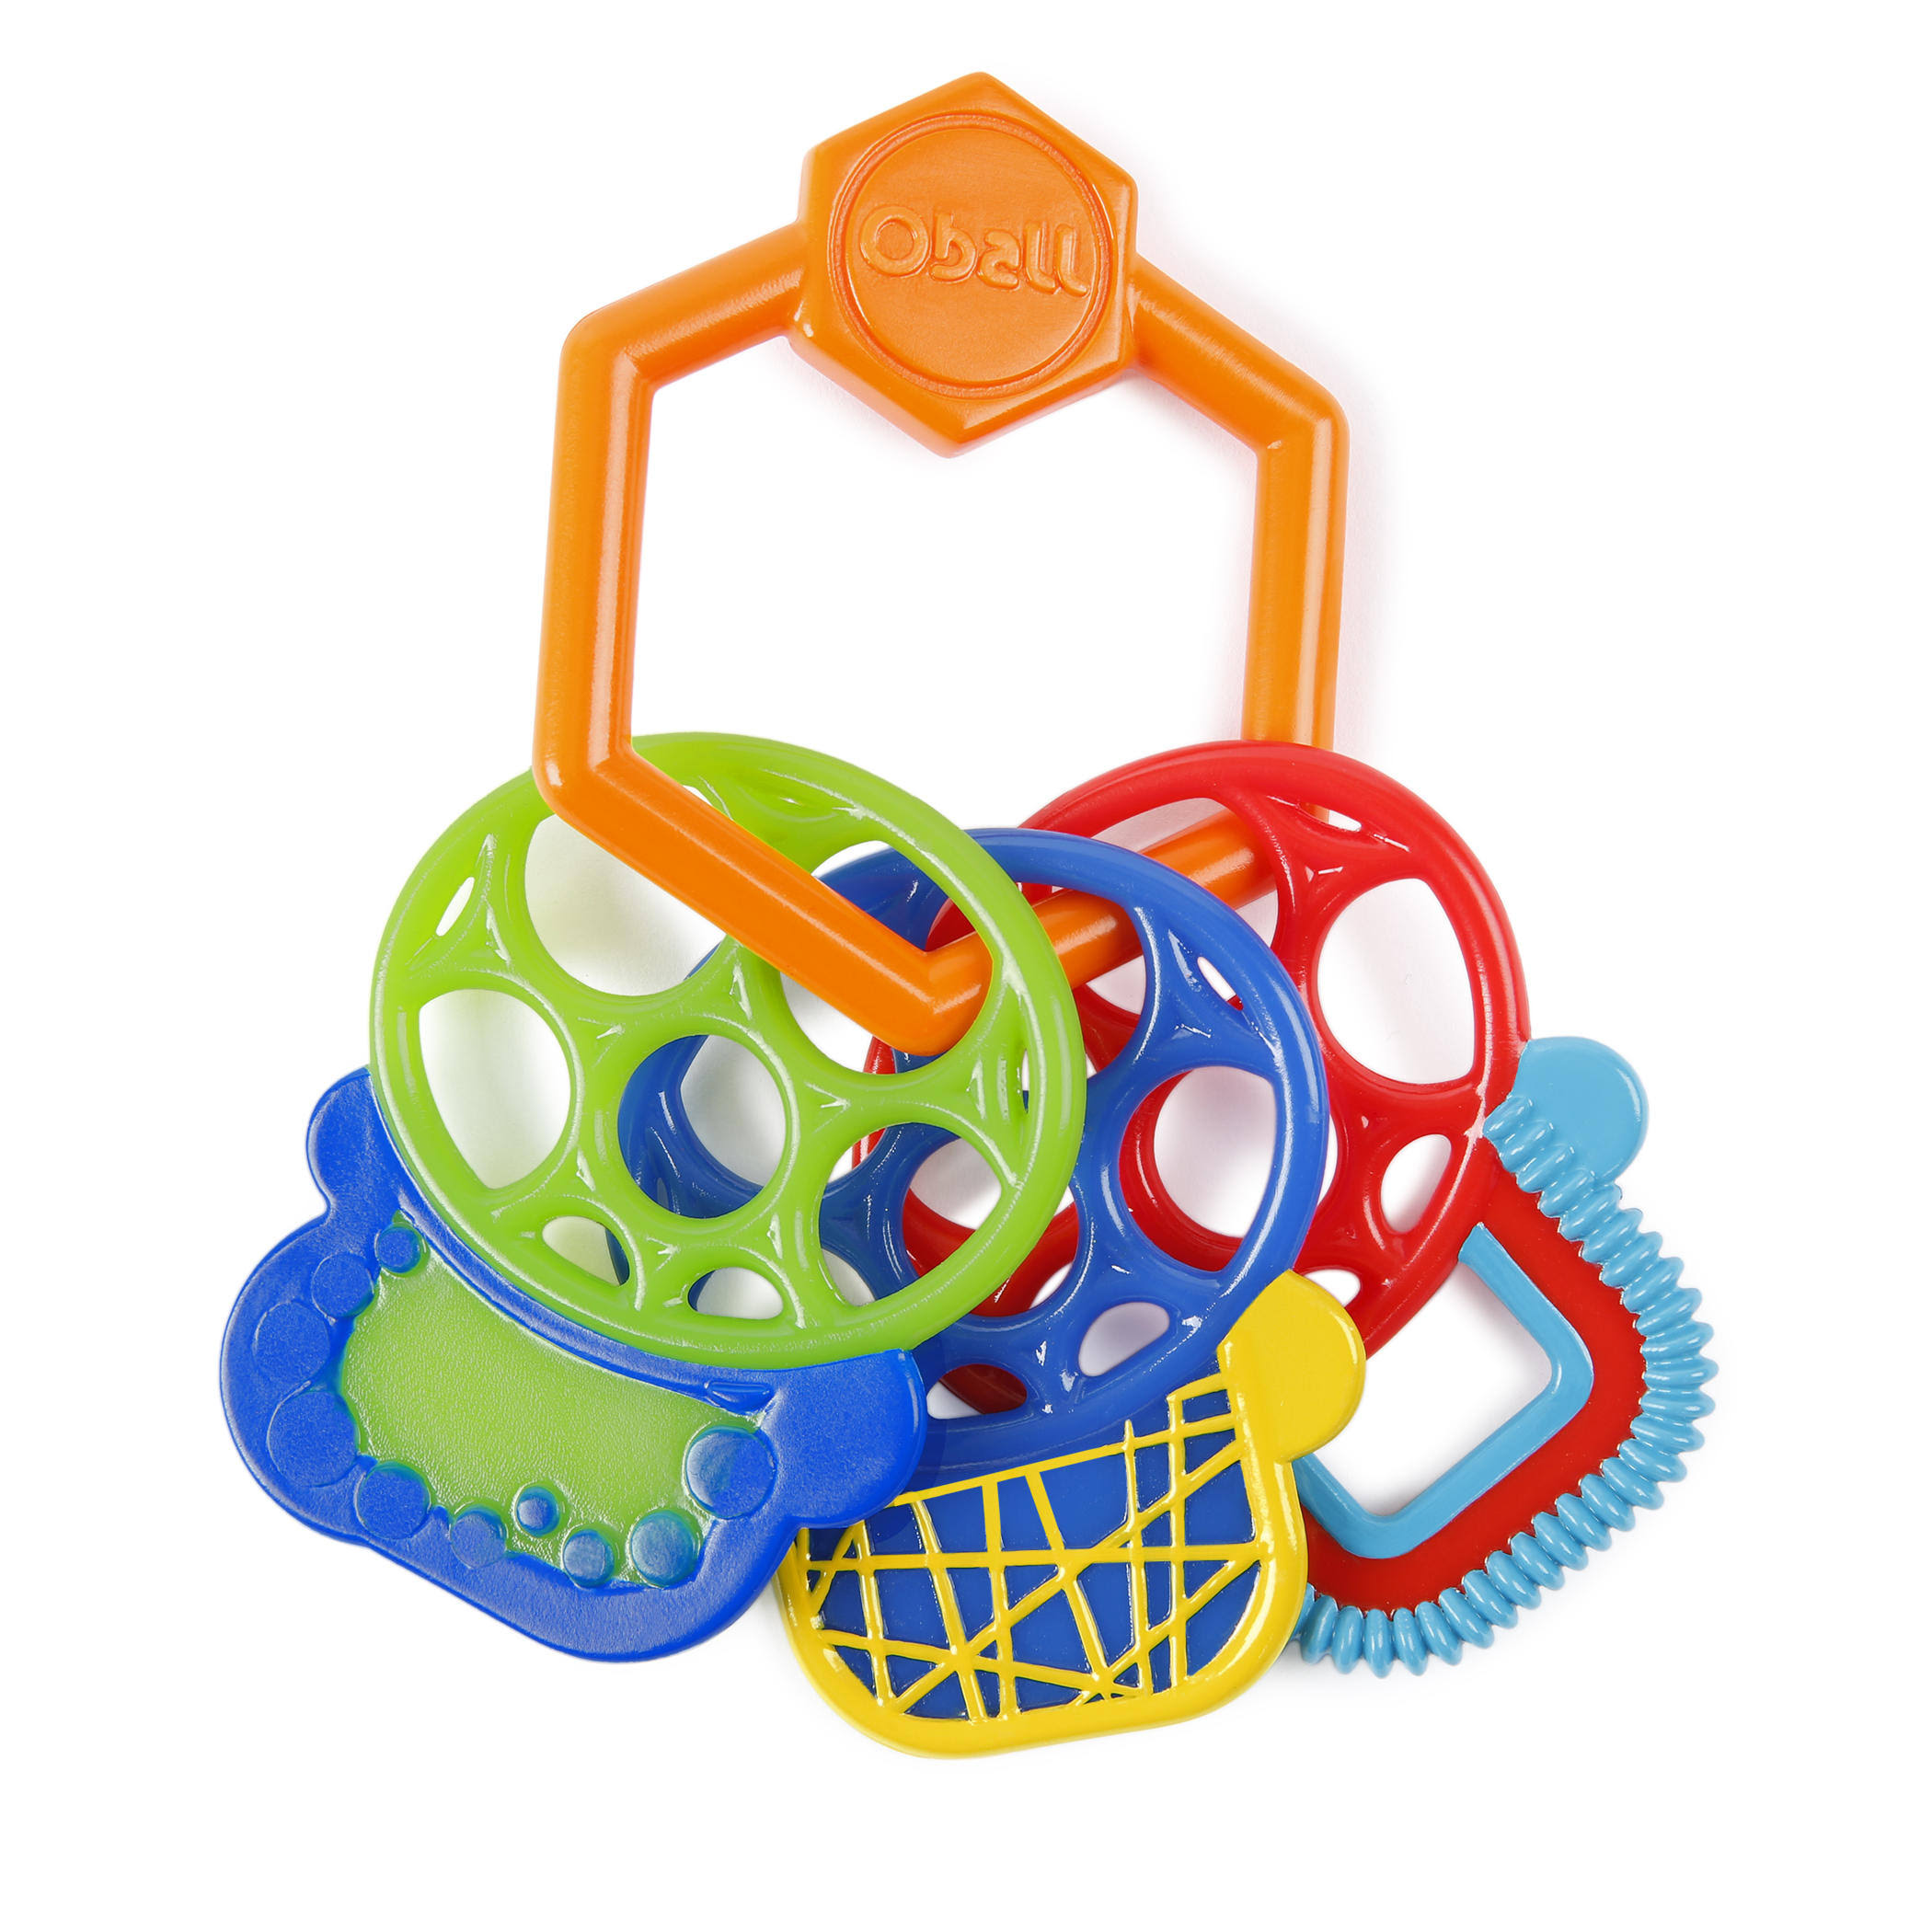 O Ball Grip and Teethe Keys Baby Toy